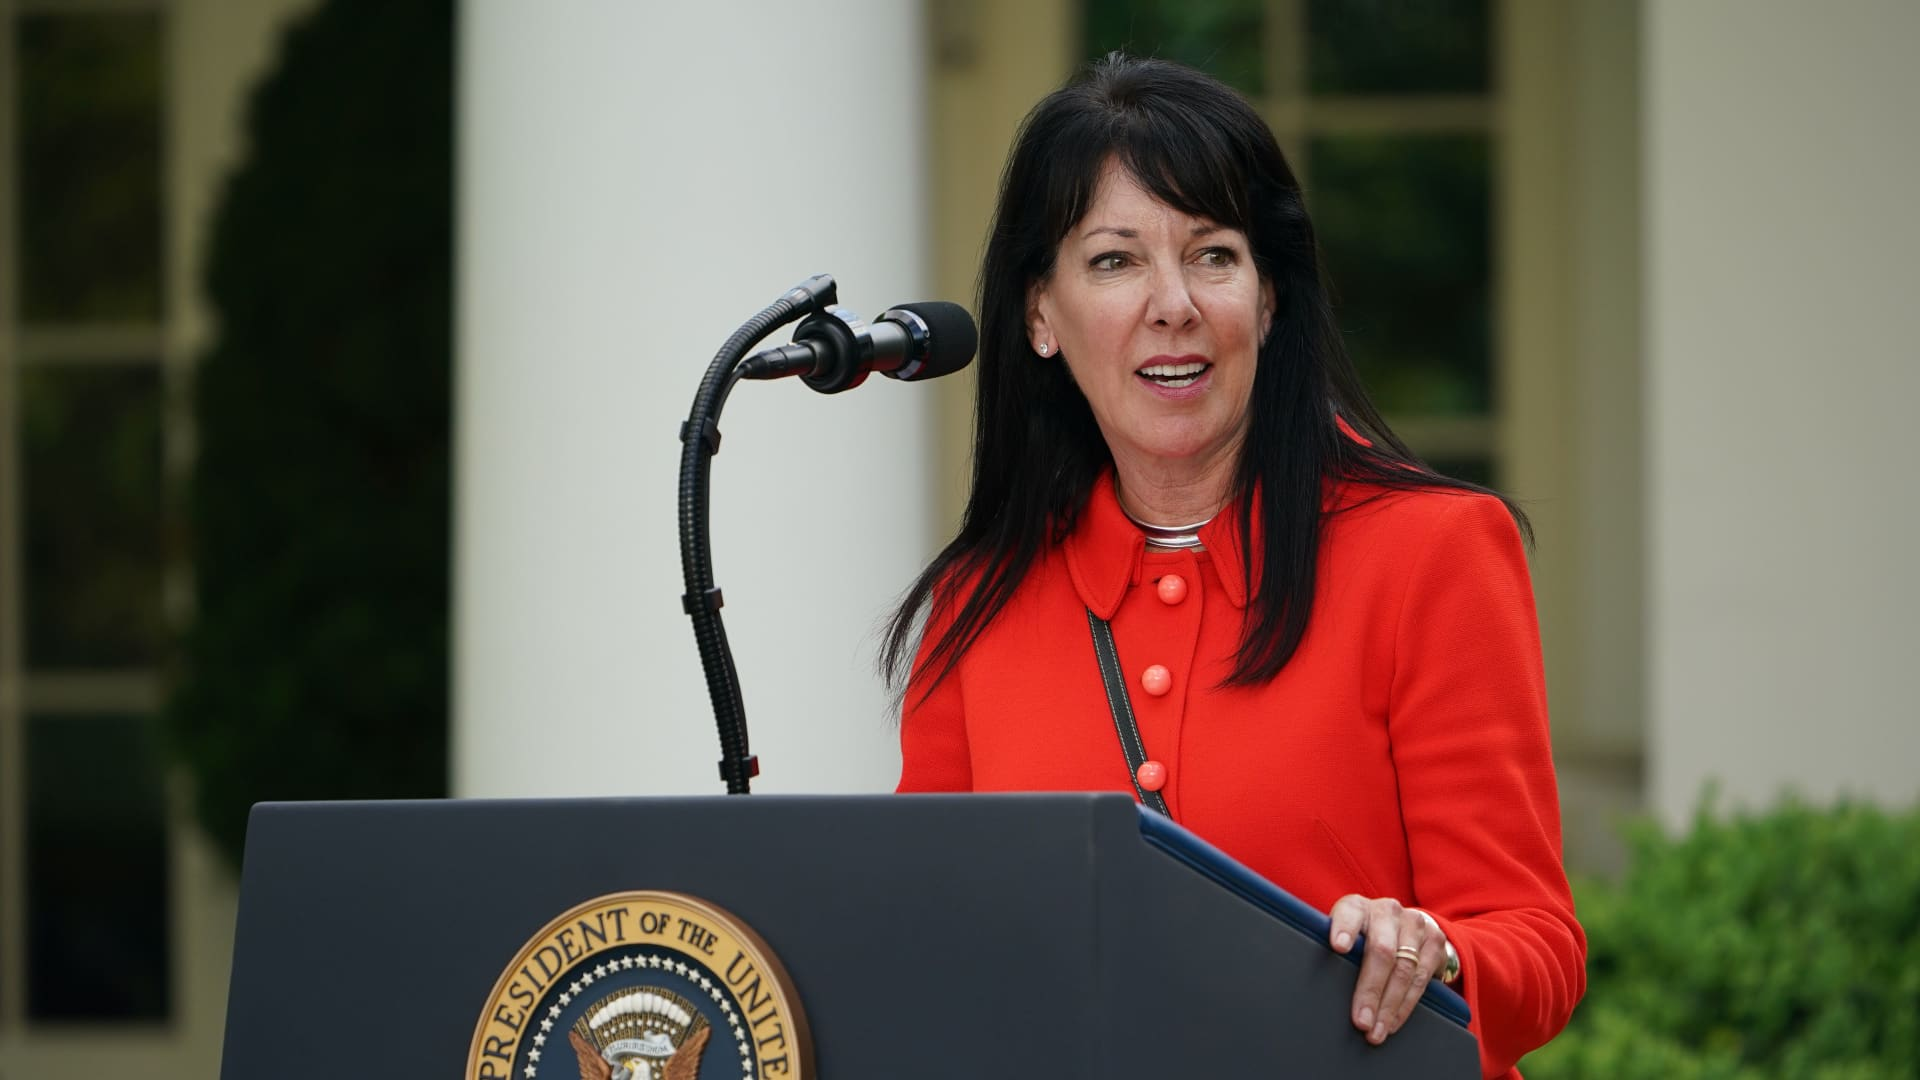 Rite Aid CEO, Heyward Donigan speaks during a news conference with US President Donald Trump on the novel coronavirus, COVID-19, in the Rose Garden of the White House in Washington, DC on April 27, 2020.